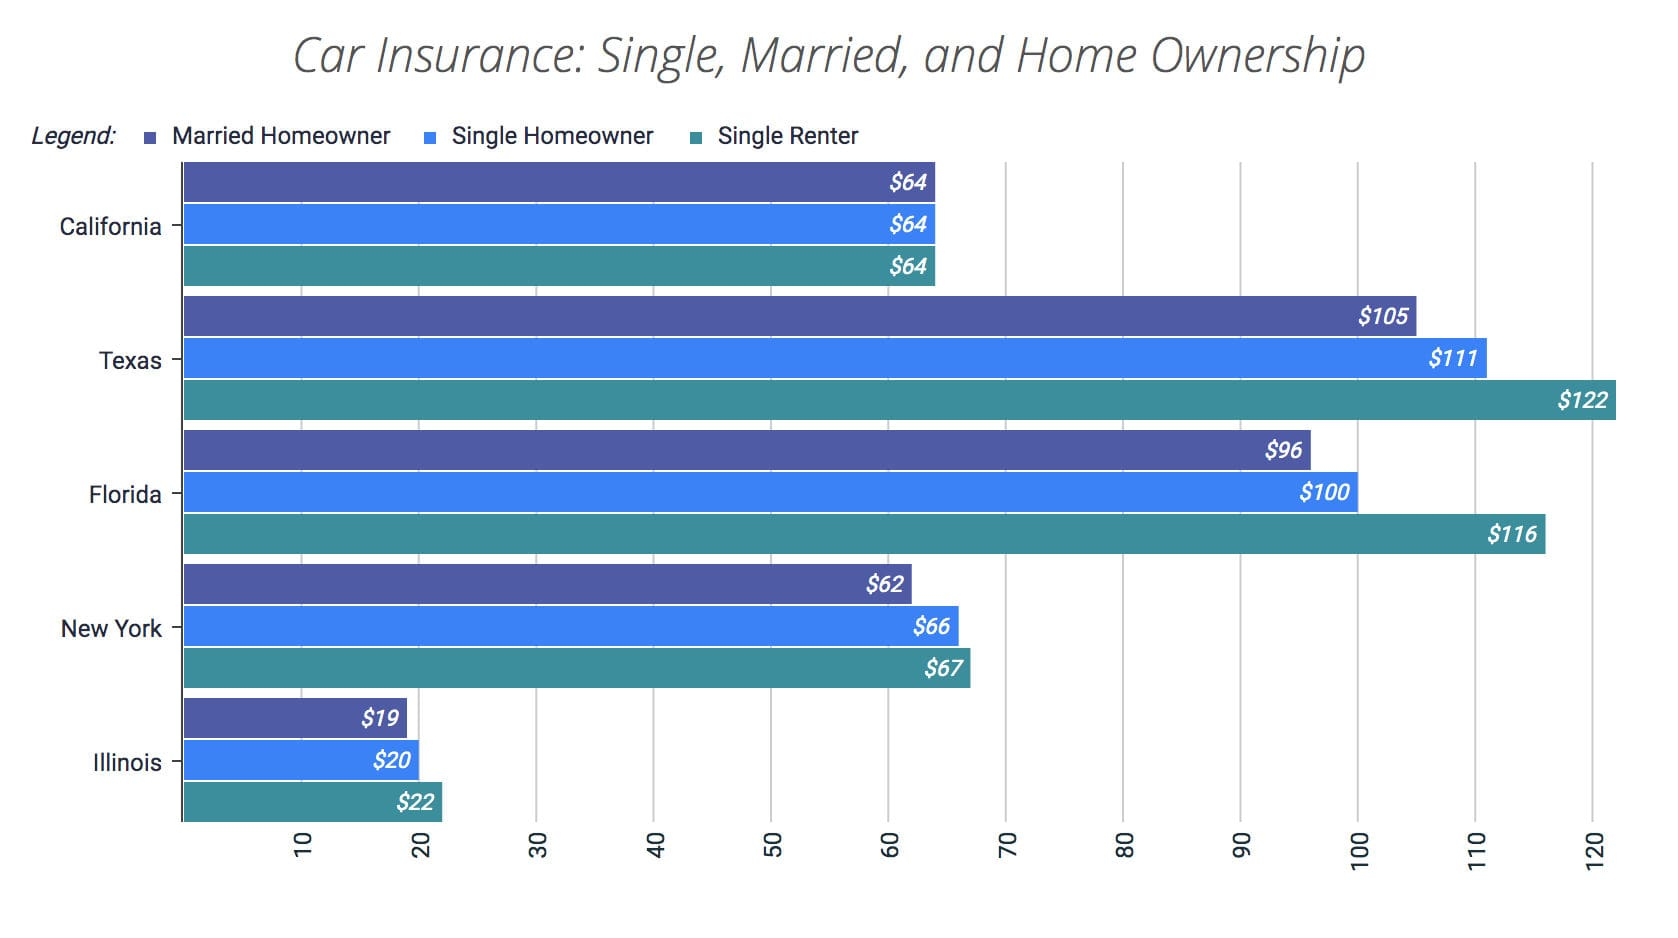 Car Insurance Rates by marital status and home ownership